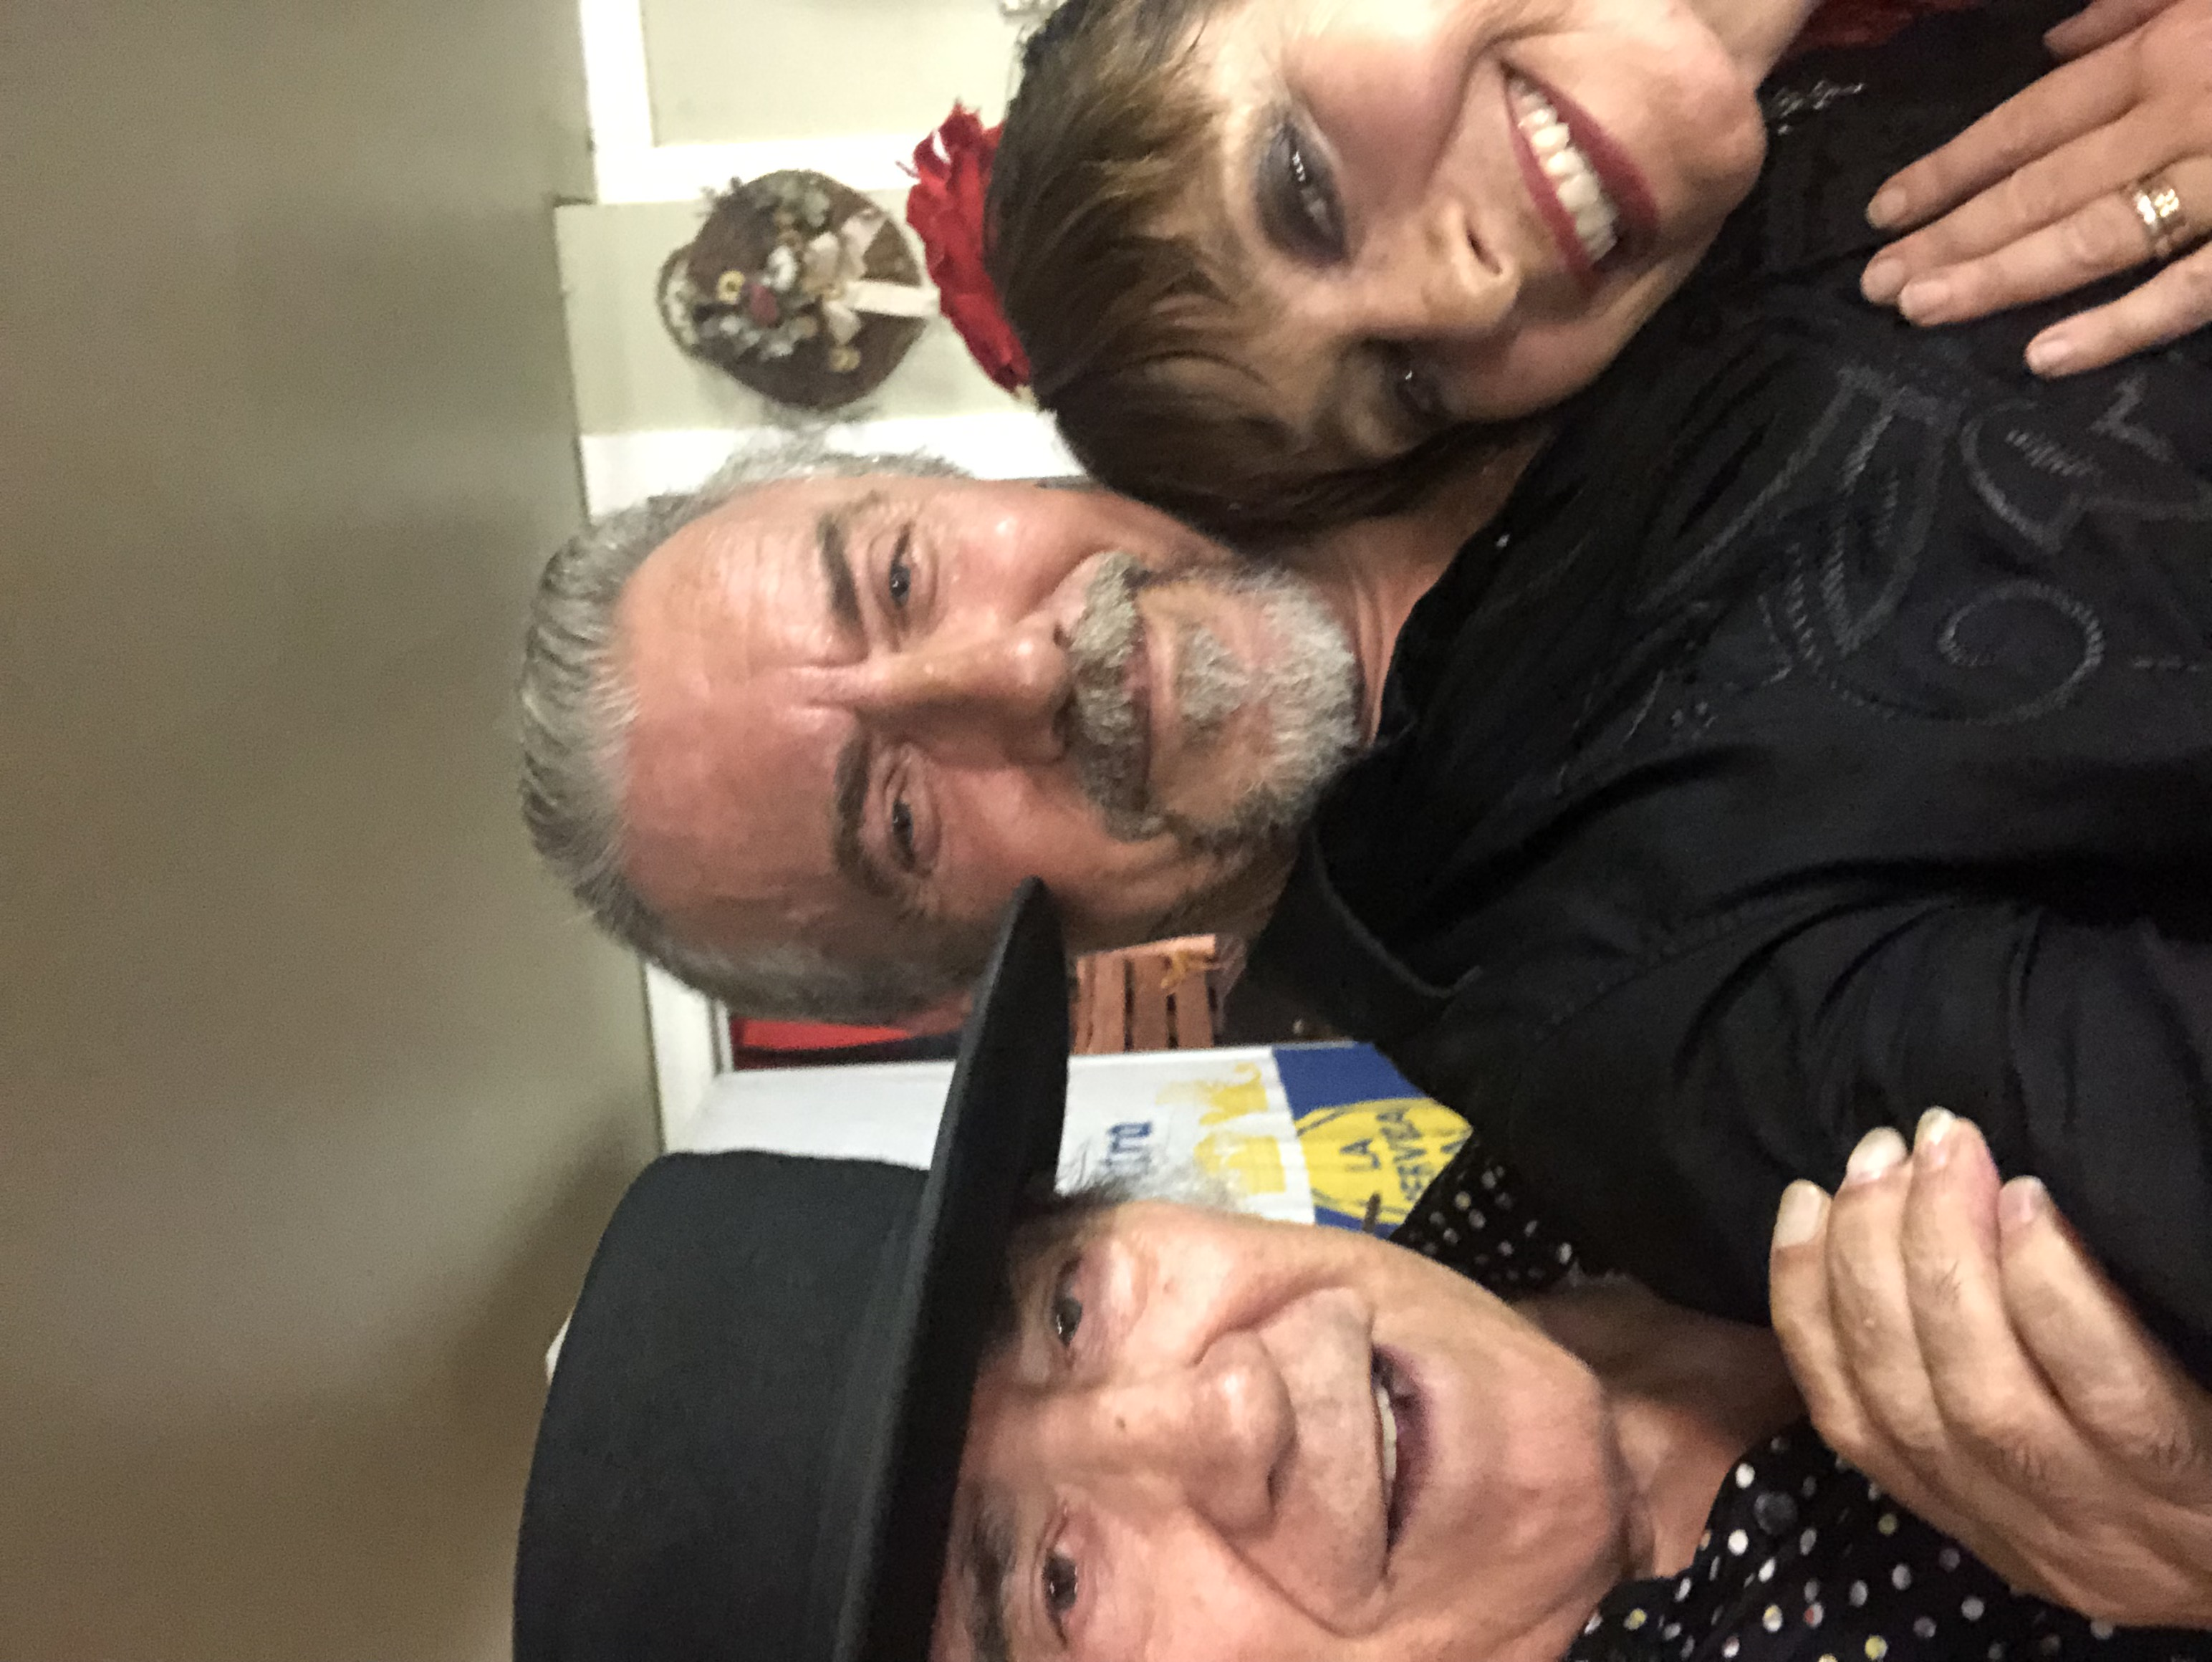 Great times with El Brujo and Laura